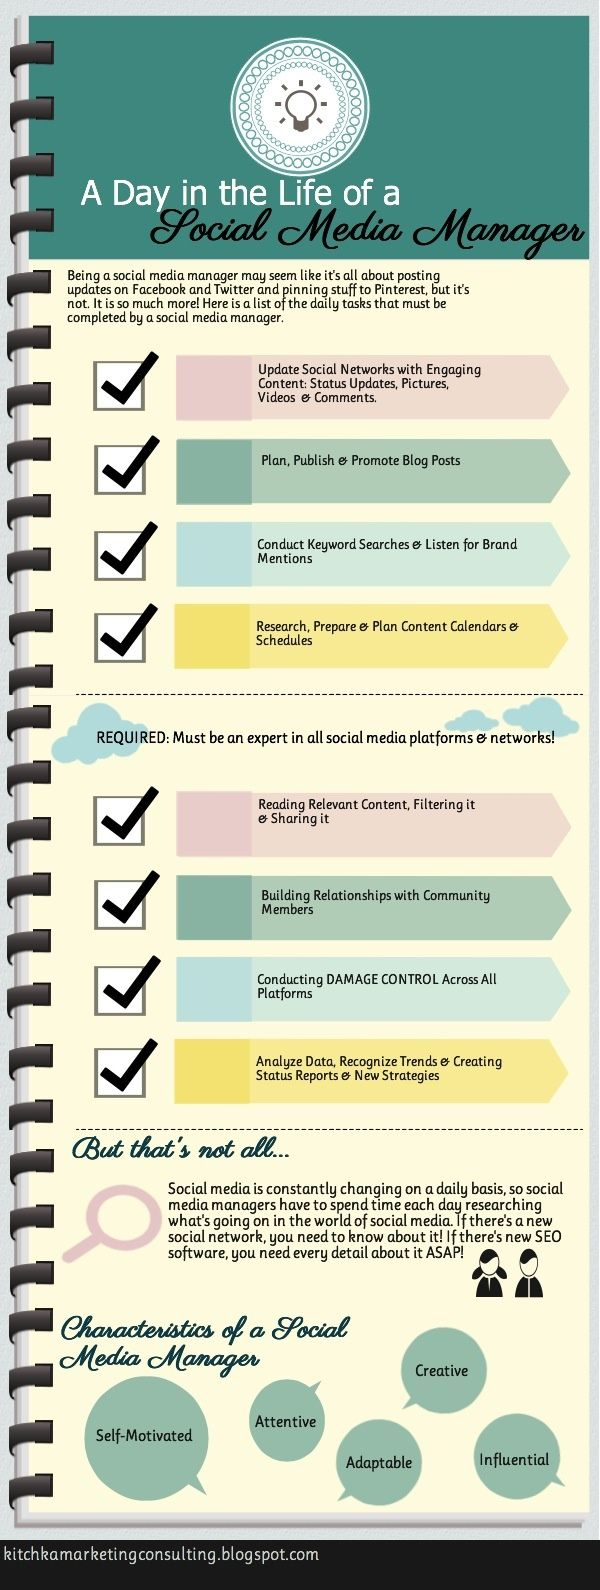 Kitchka Marketing Consulting: Daily Tasks of a Social Media Manager #socialmedia #management #content